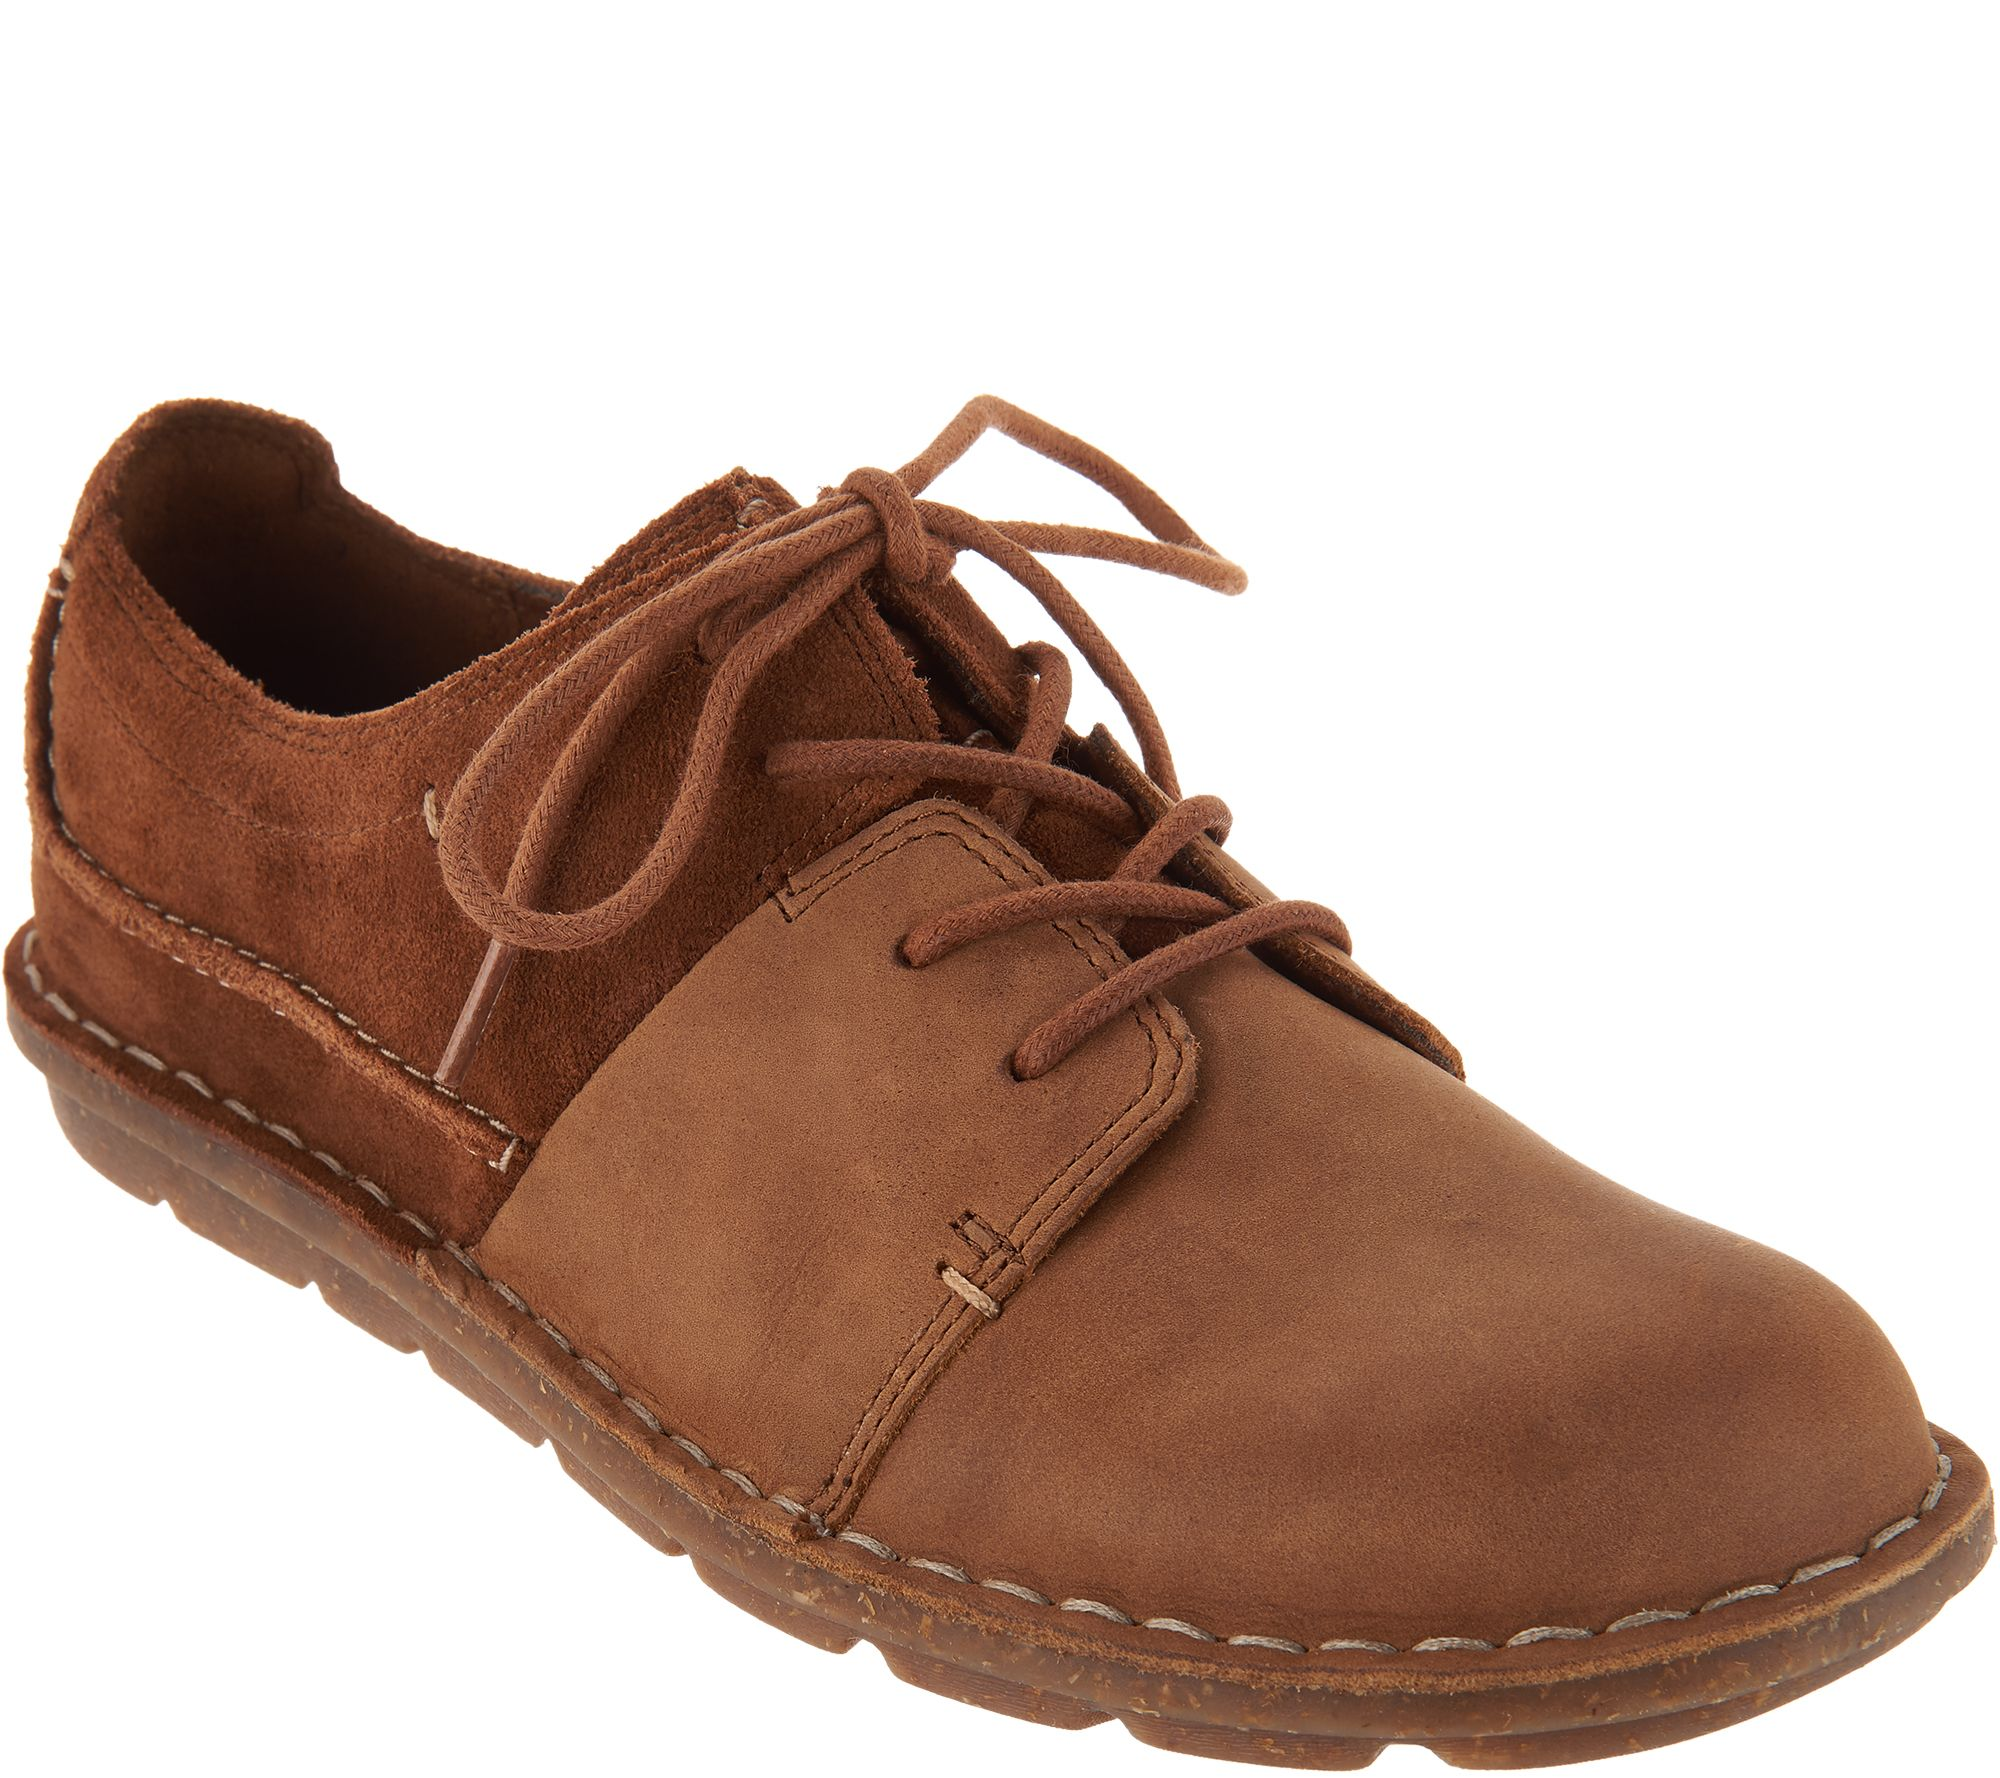 ad307cd2a4e1 Clarks Leather Lace-up Shoes - Tamitha Daisy - Page 1 — QVC.com